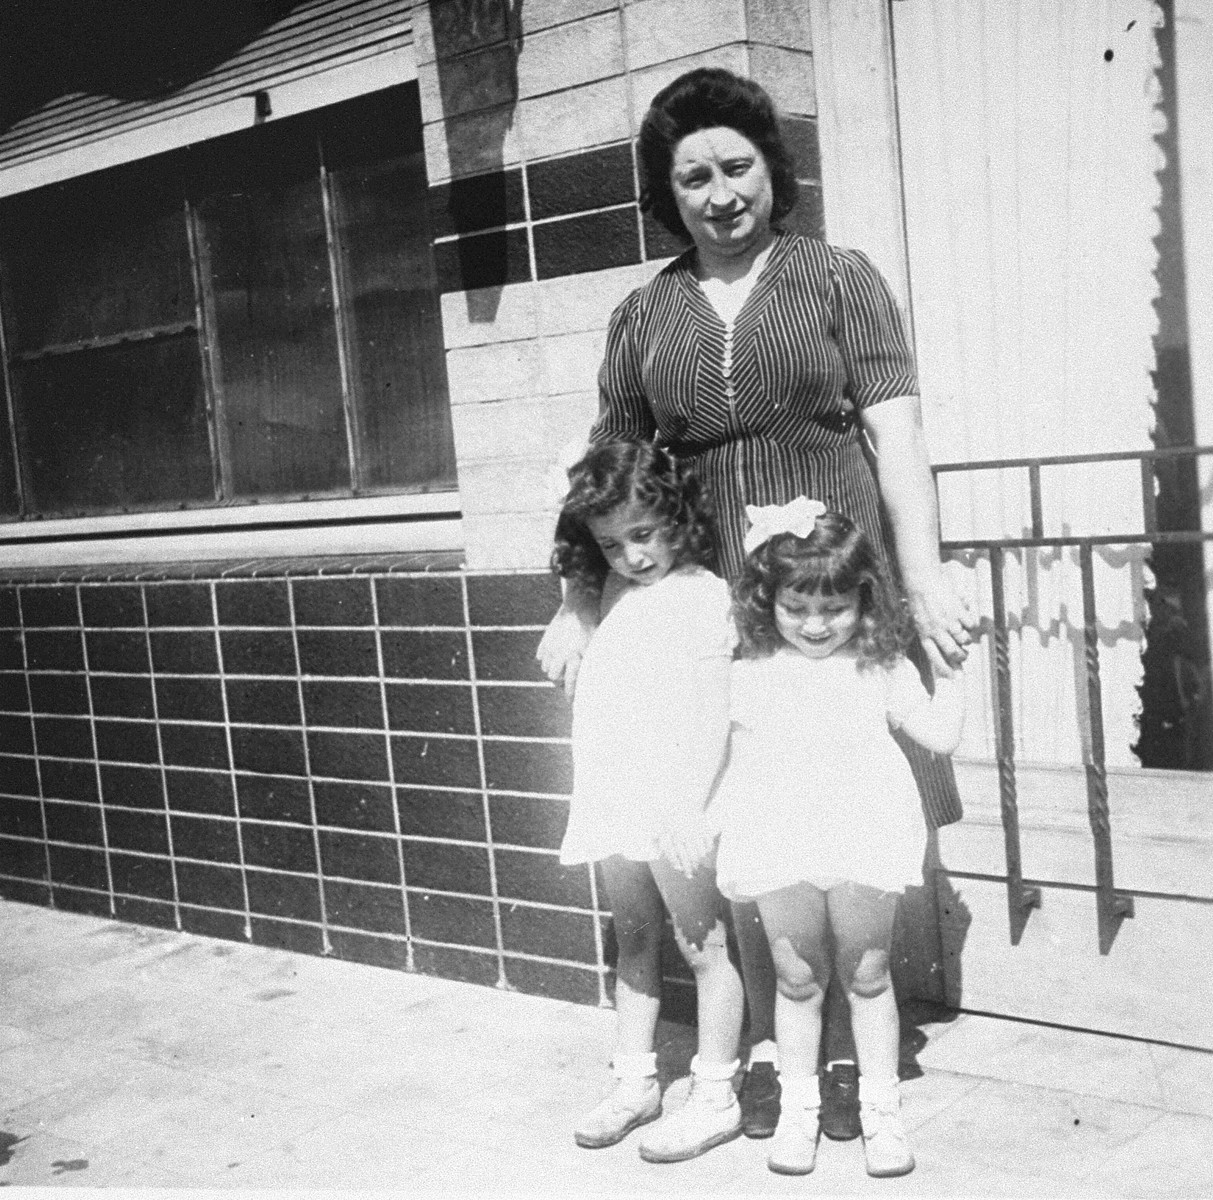 Annette and Margo Lederman, two Jewish children in hiding, pose with their rescuer, Clementine van Buggenhout, outside the cafe owned by the van Buggenhouts.